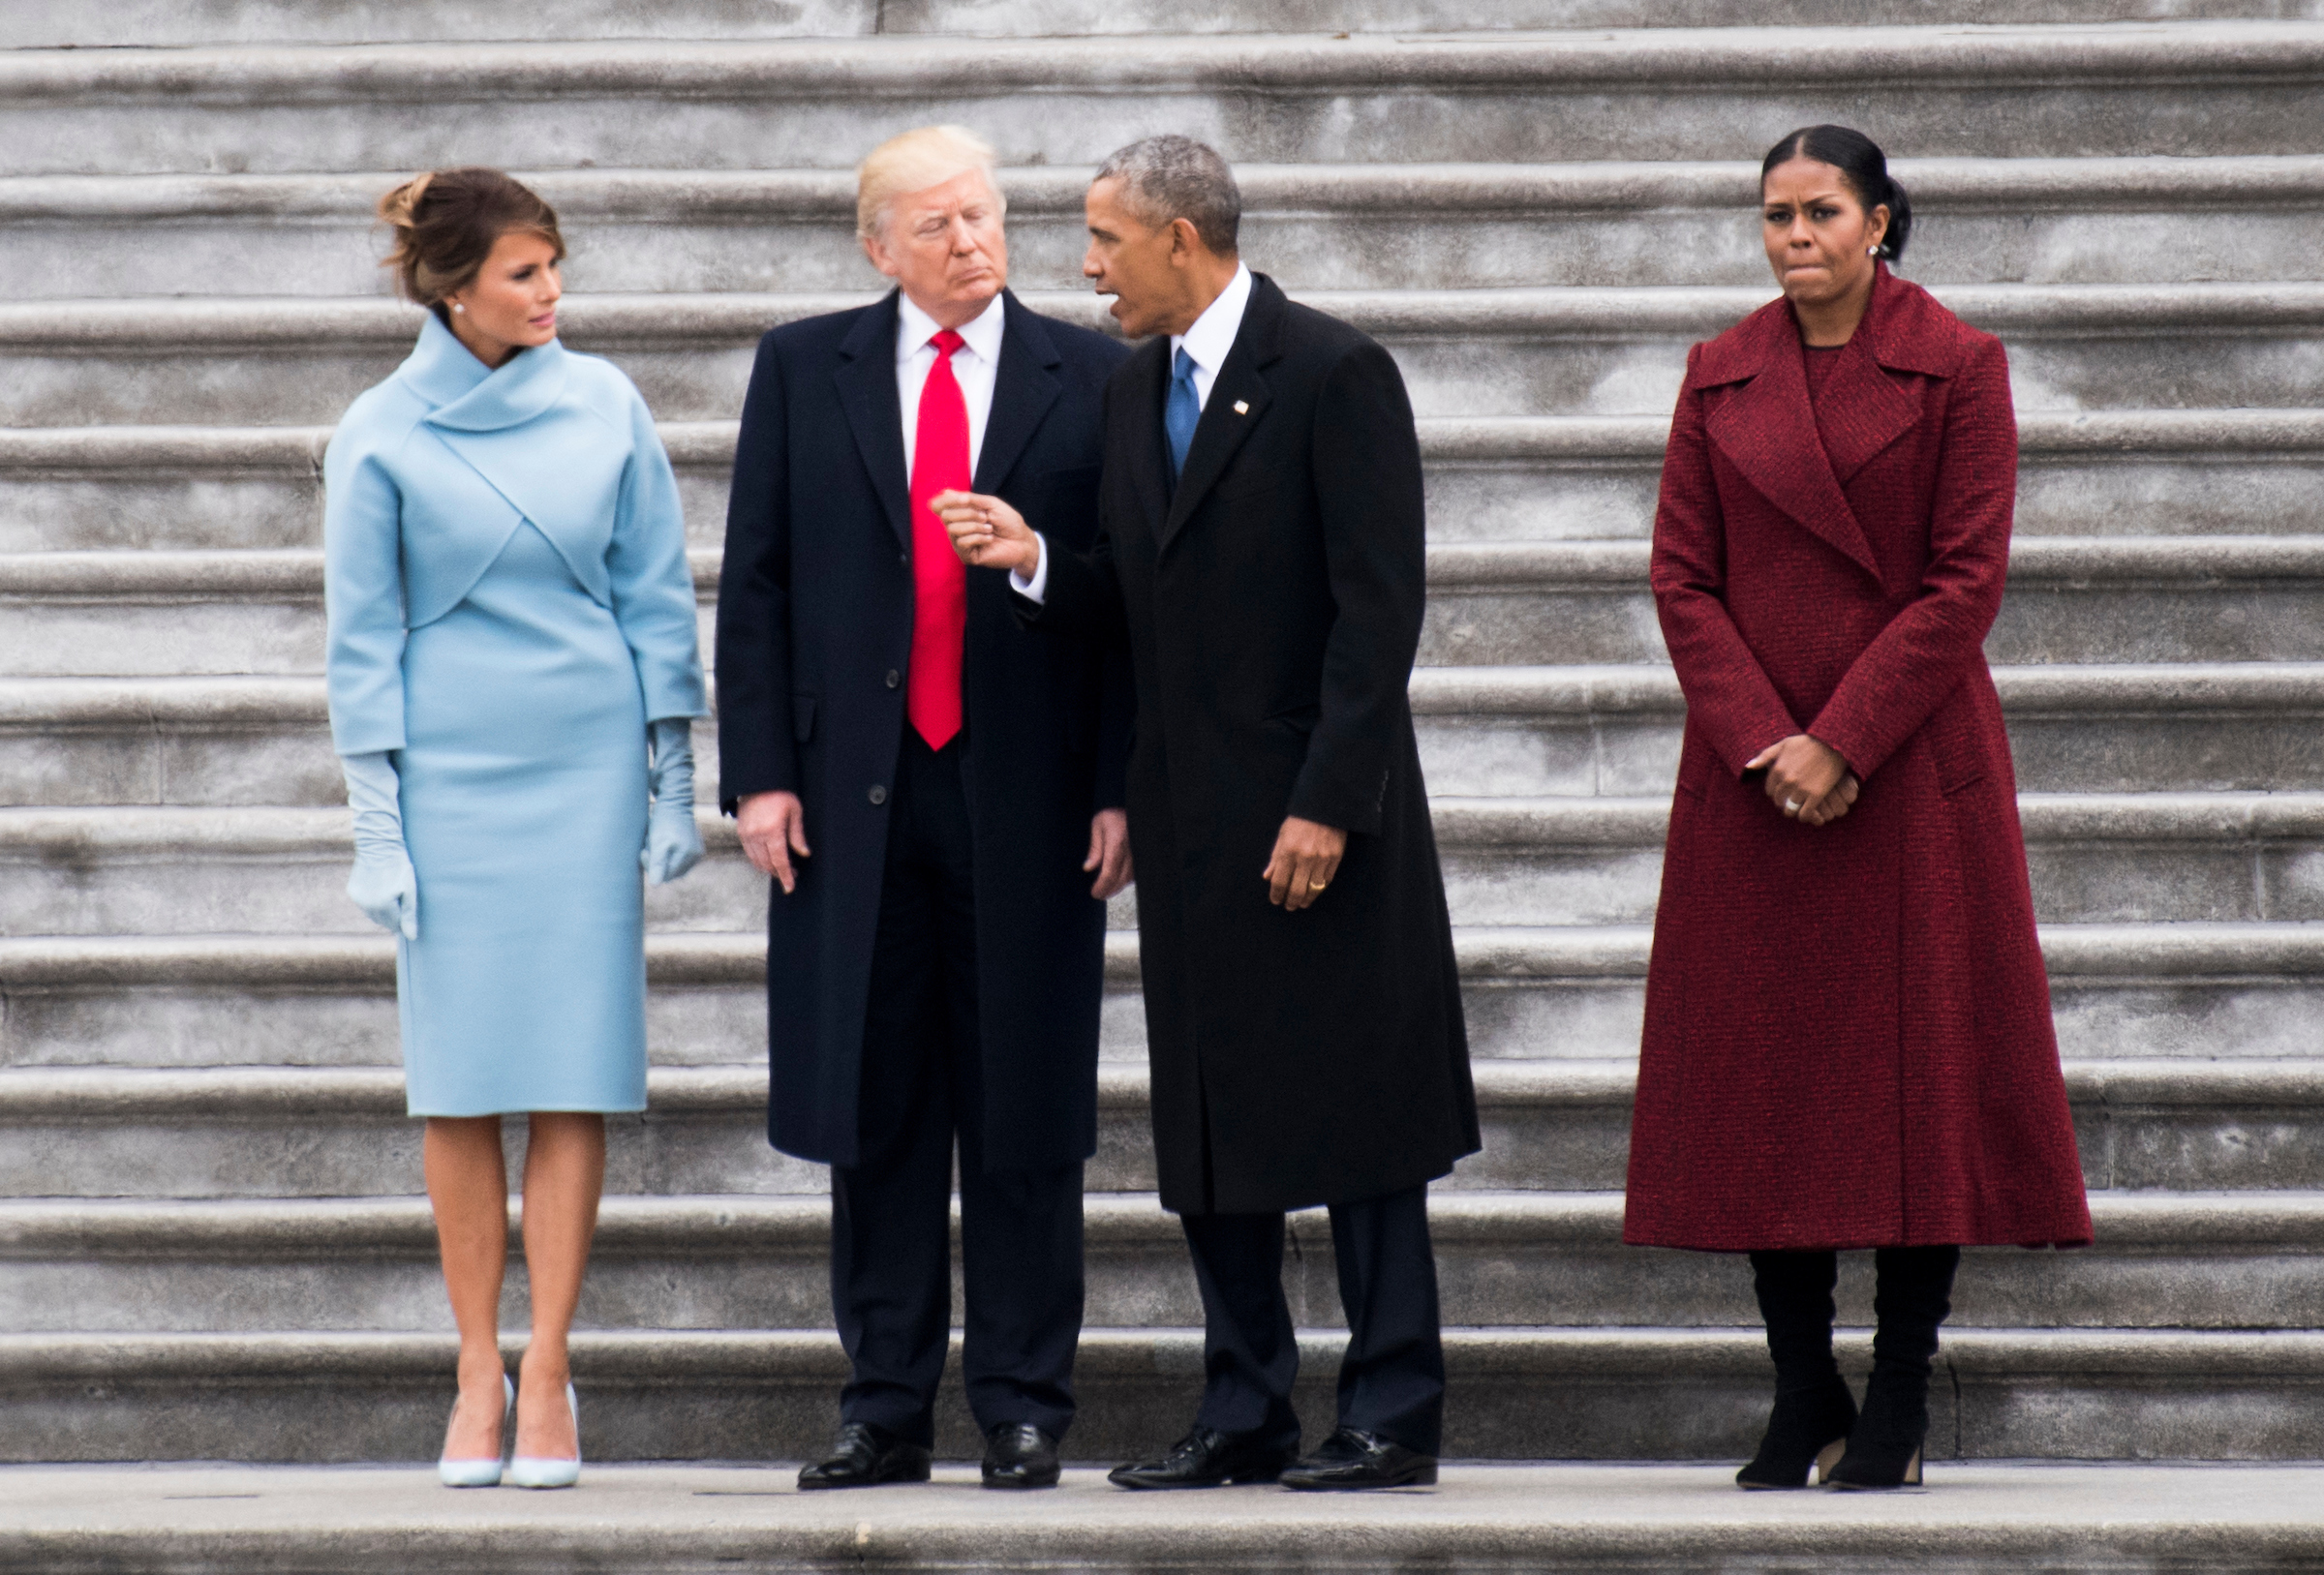 From left, First Lady Melania Trump, President Donald Trump, former President Barack Obama, and former First Lady Michelle Obama talk on the steps of the U.S. Capitol as the Obamas prepare to leave Washington following the swearing in of Donald Trump as the 45th President of the United States on Friday, Jan. 20, 2017.(Photo By Bill Clark/CQ Roll Call)